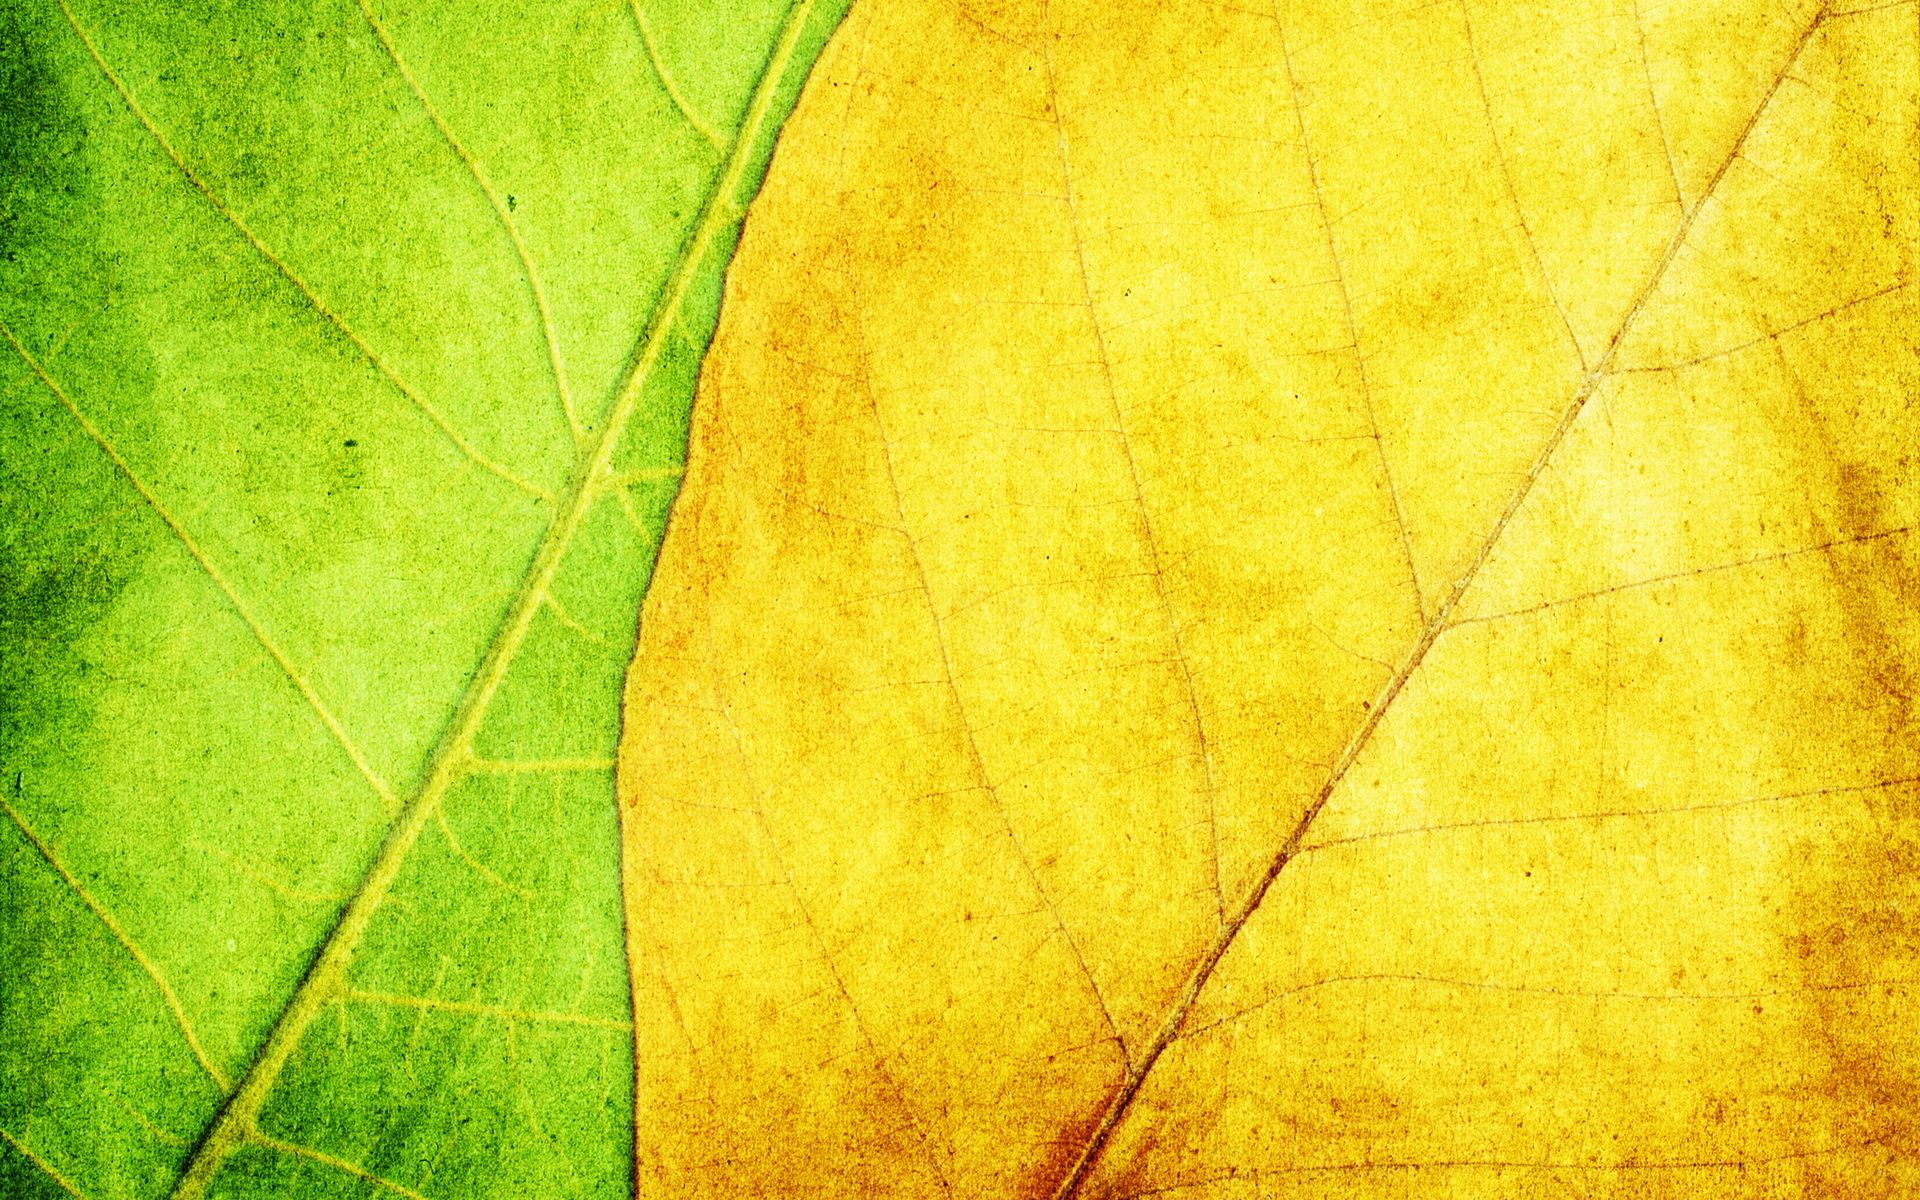 Free Download Texture Leaves Yellow Green Wallpaper